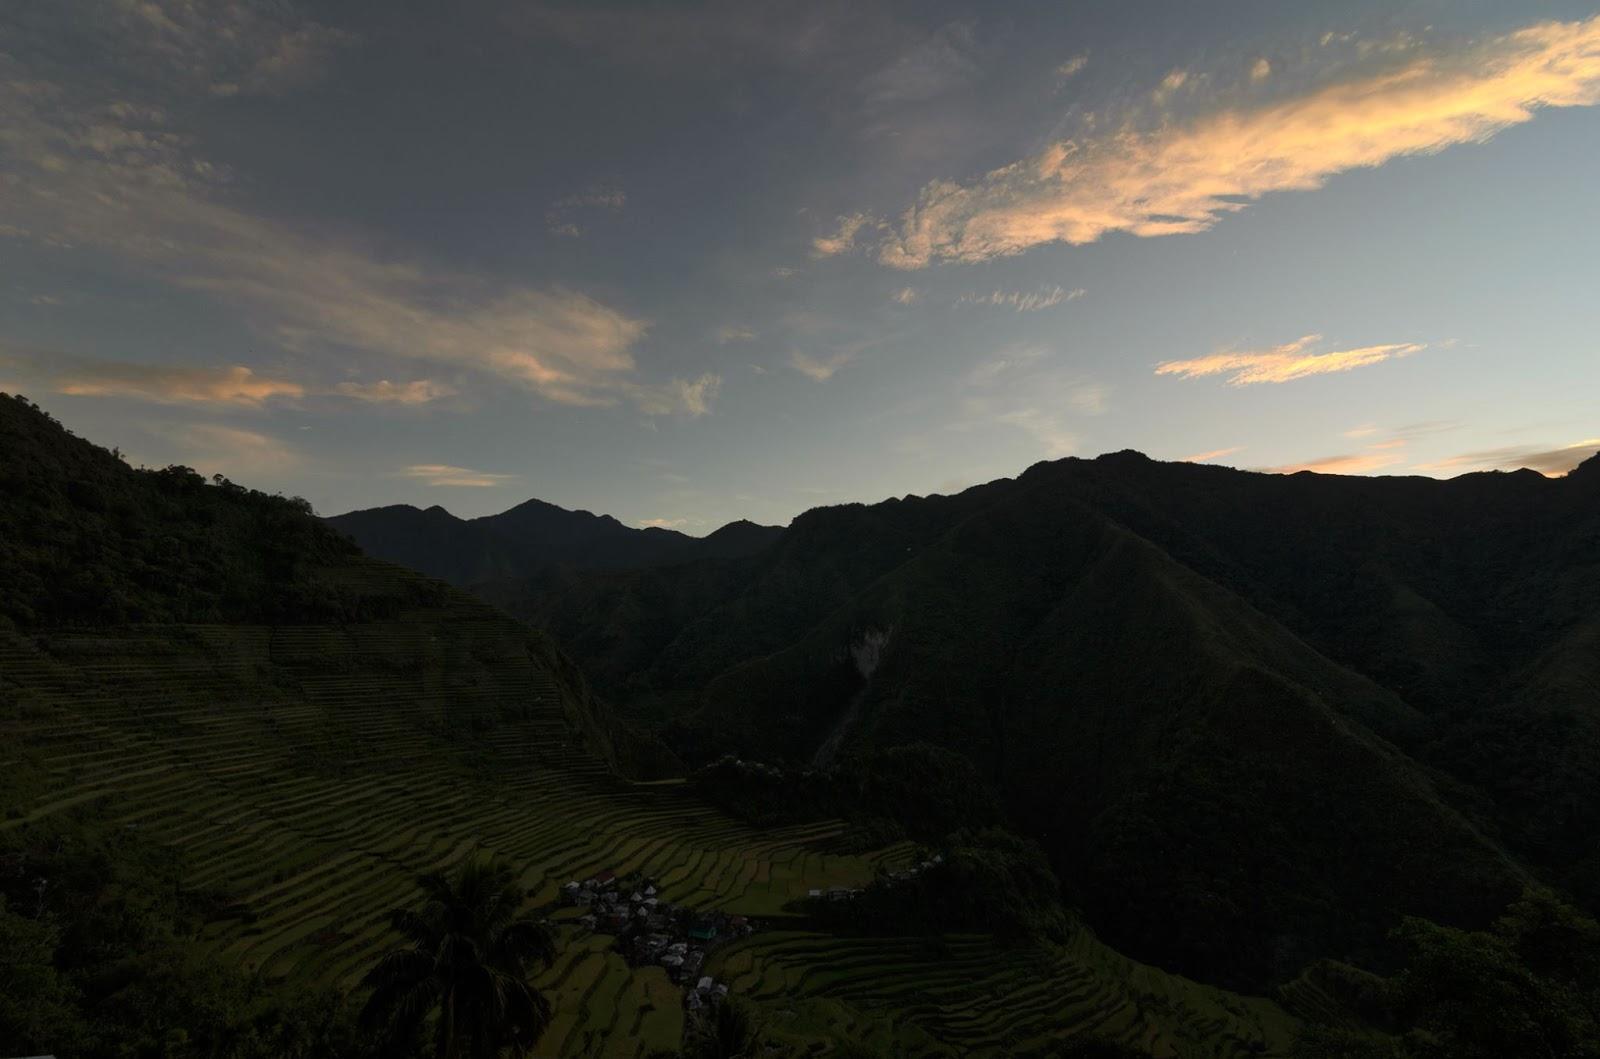 8th Wonder of the World Batad Rice Terraces Ifugao Cordillera Administrative Region Philippines Dawn of a New Day